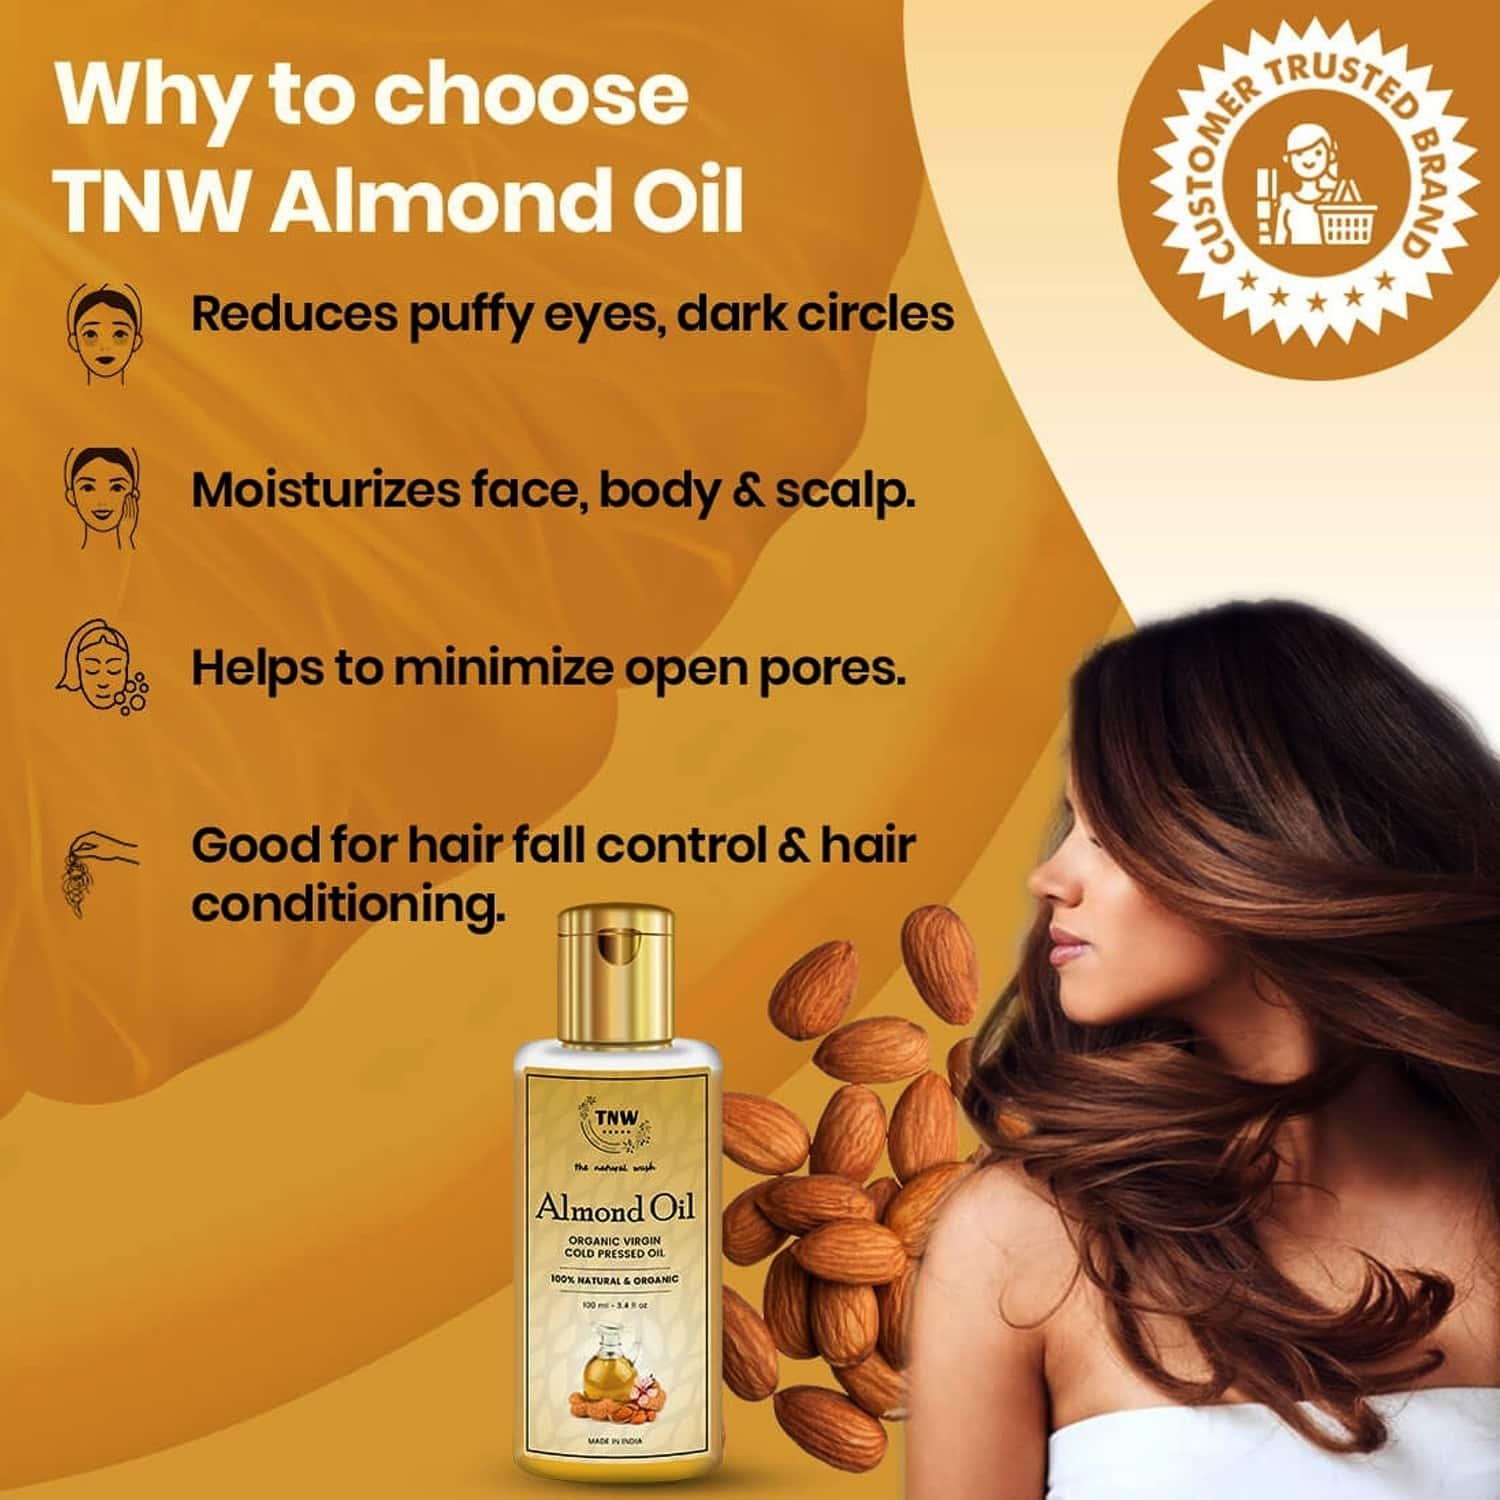 Tnw -the Natural Wash Cold Pressed Virgin Almond Oil For Face Skin Body Hair And Scalp - 100 Ml